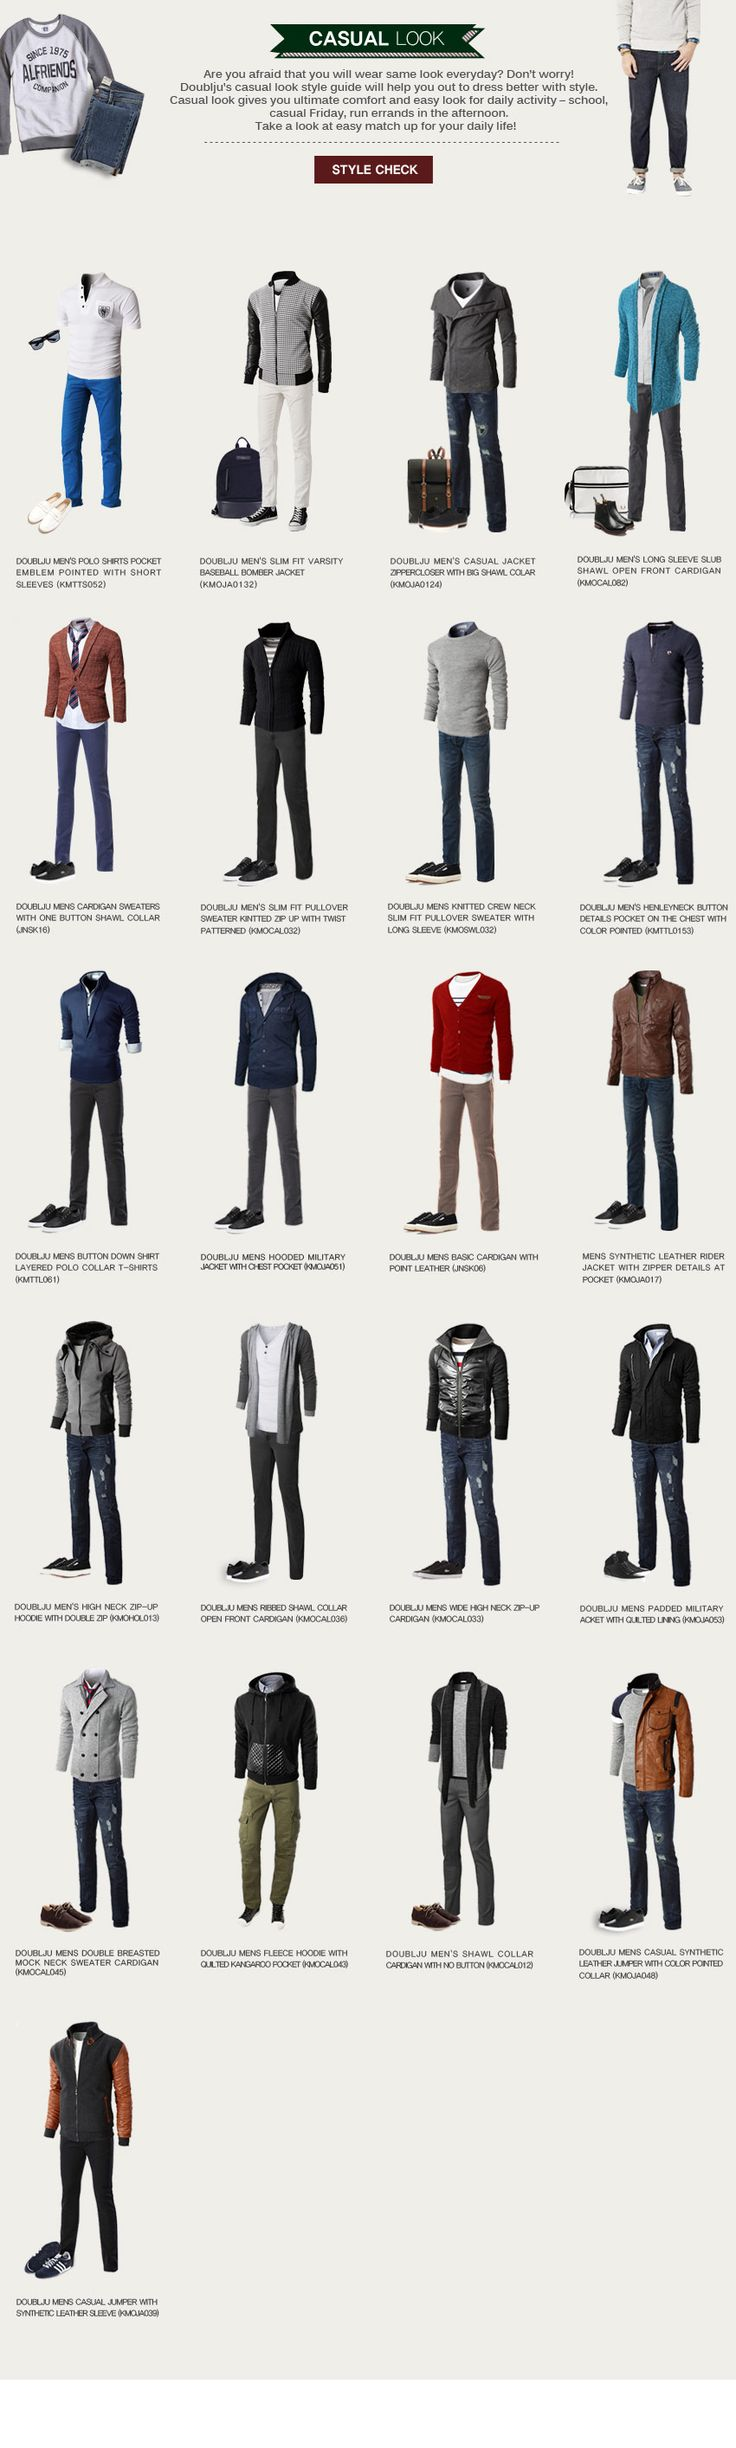 Men's Casual Looks